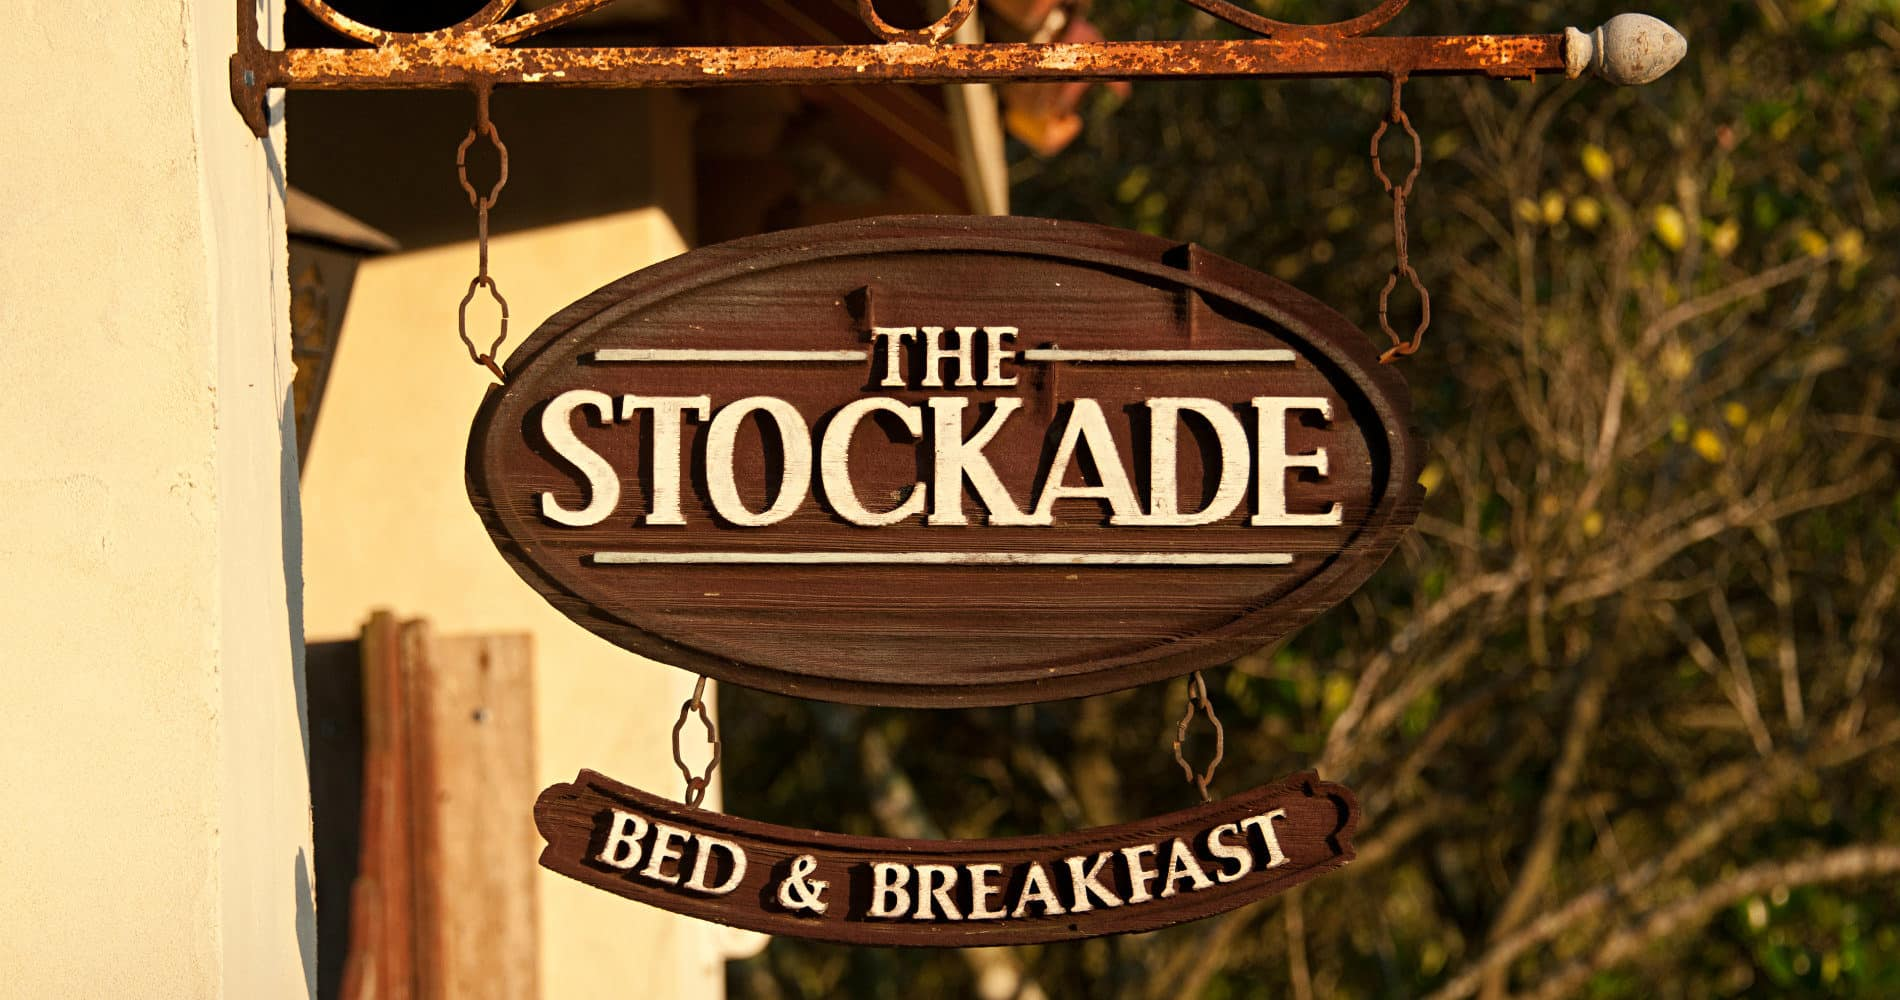 The Stockade sign hanging from ironwork on historic gate, with Bed and Breakfast sign underneath against green trees